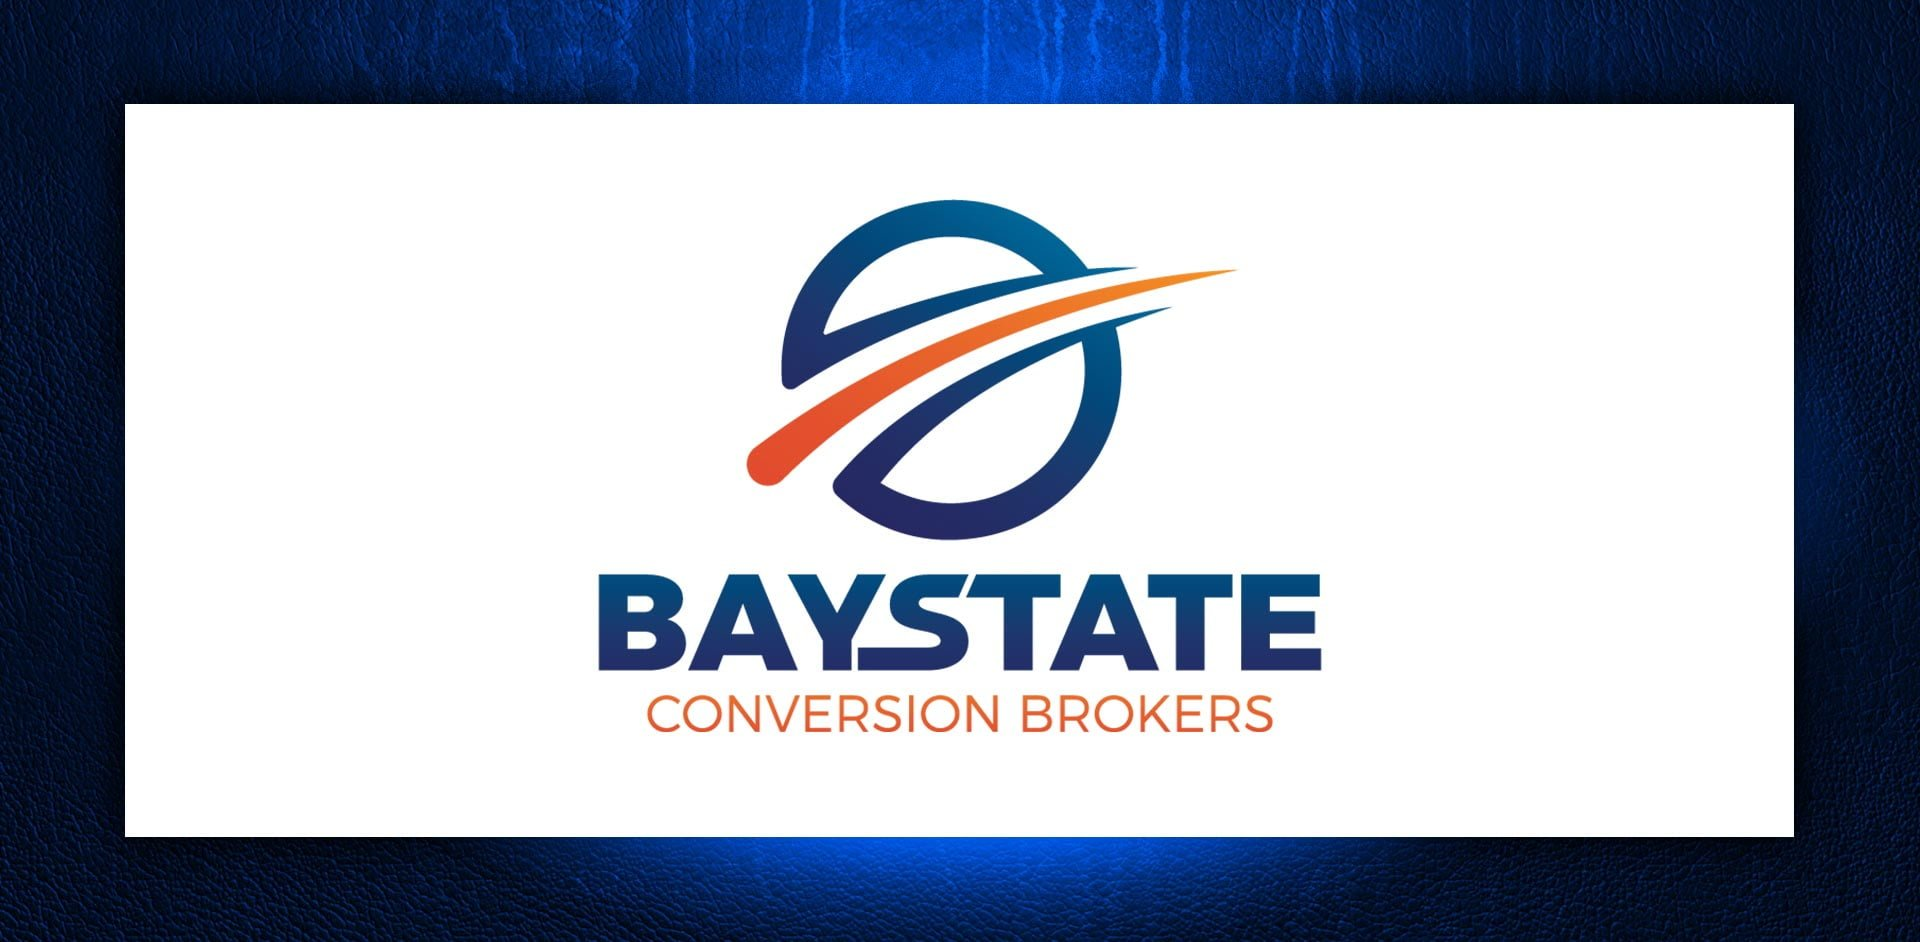 Baystate Conversion Brokers